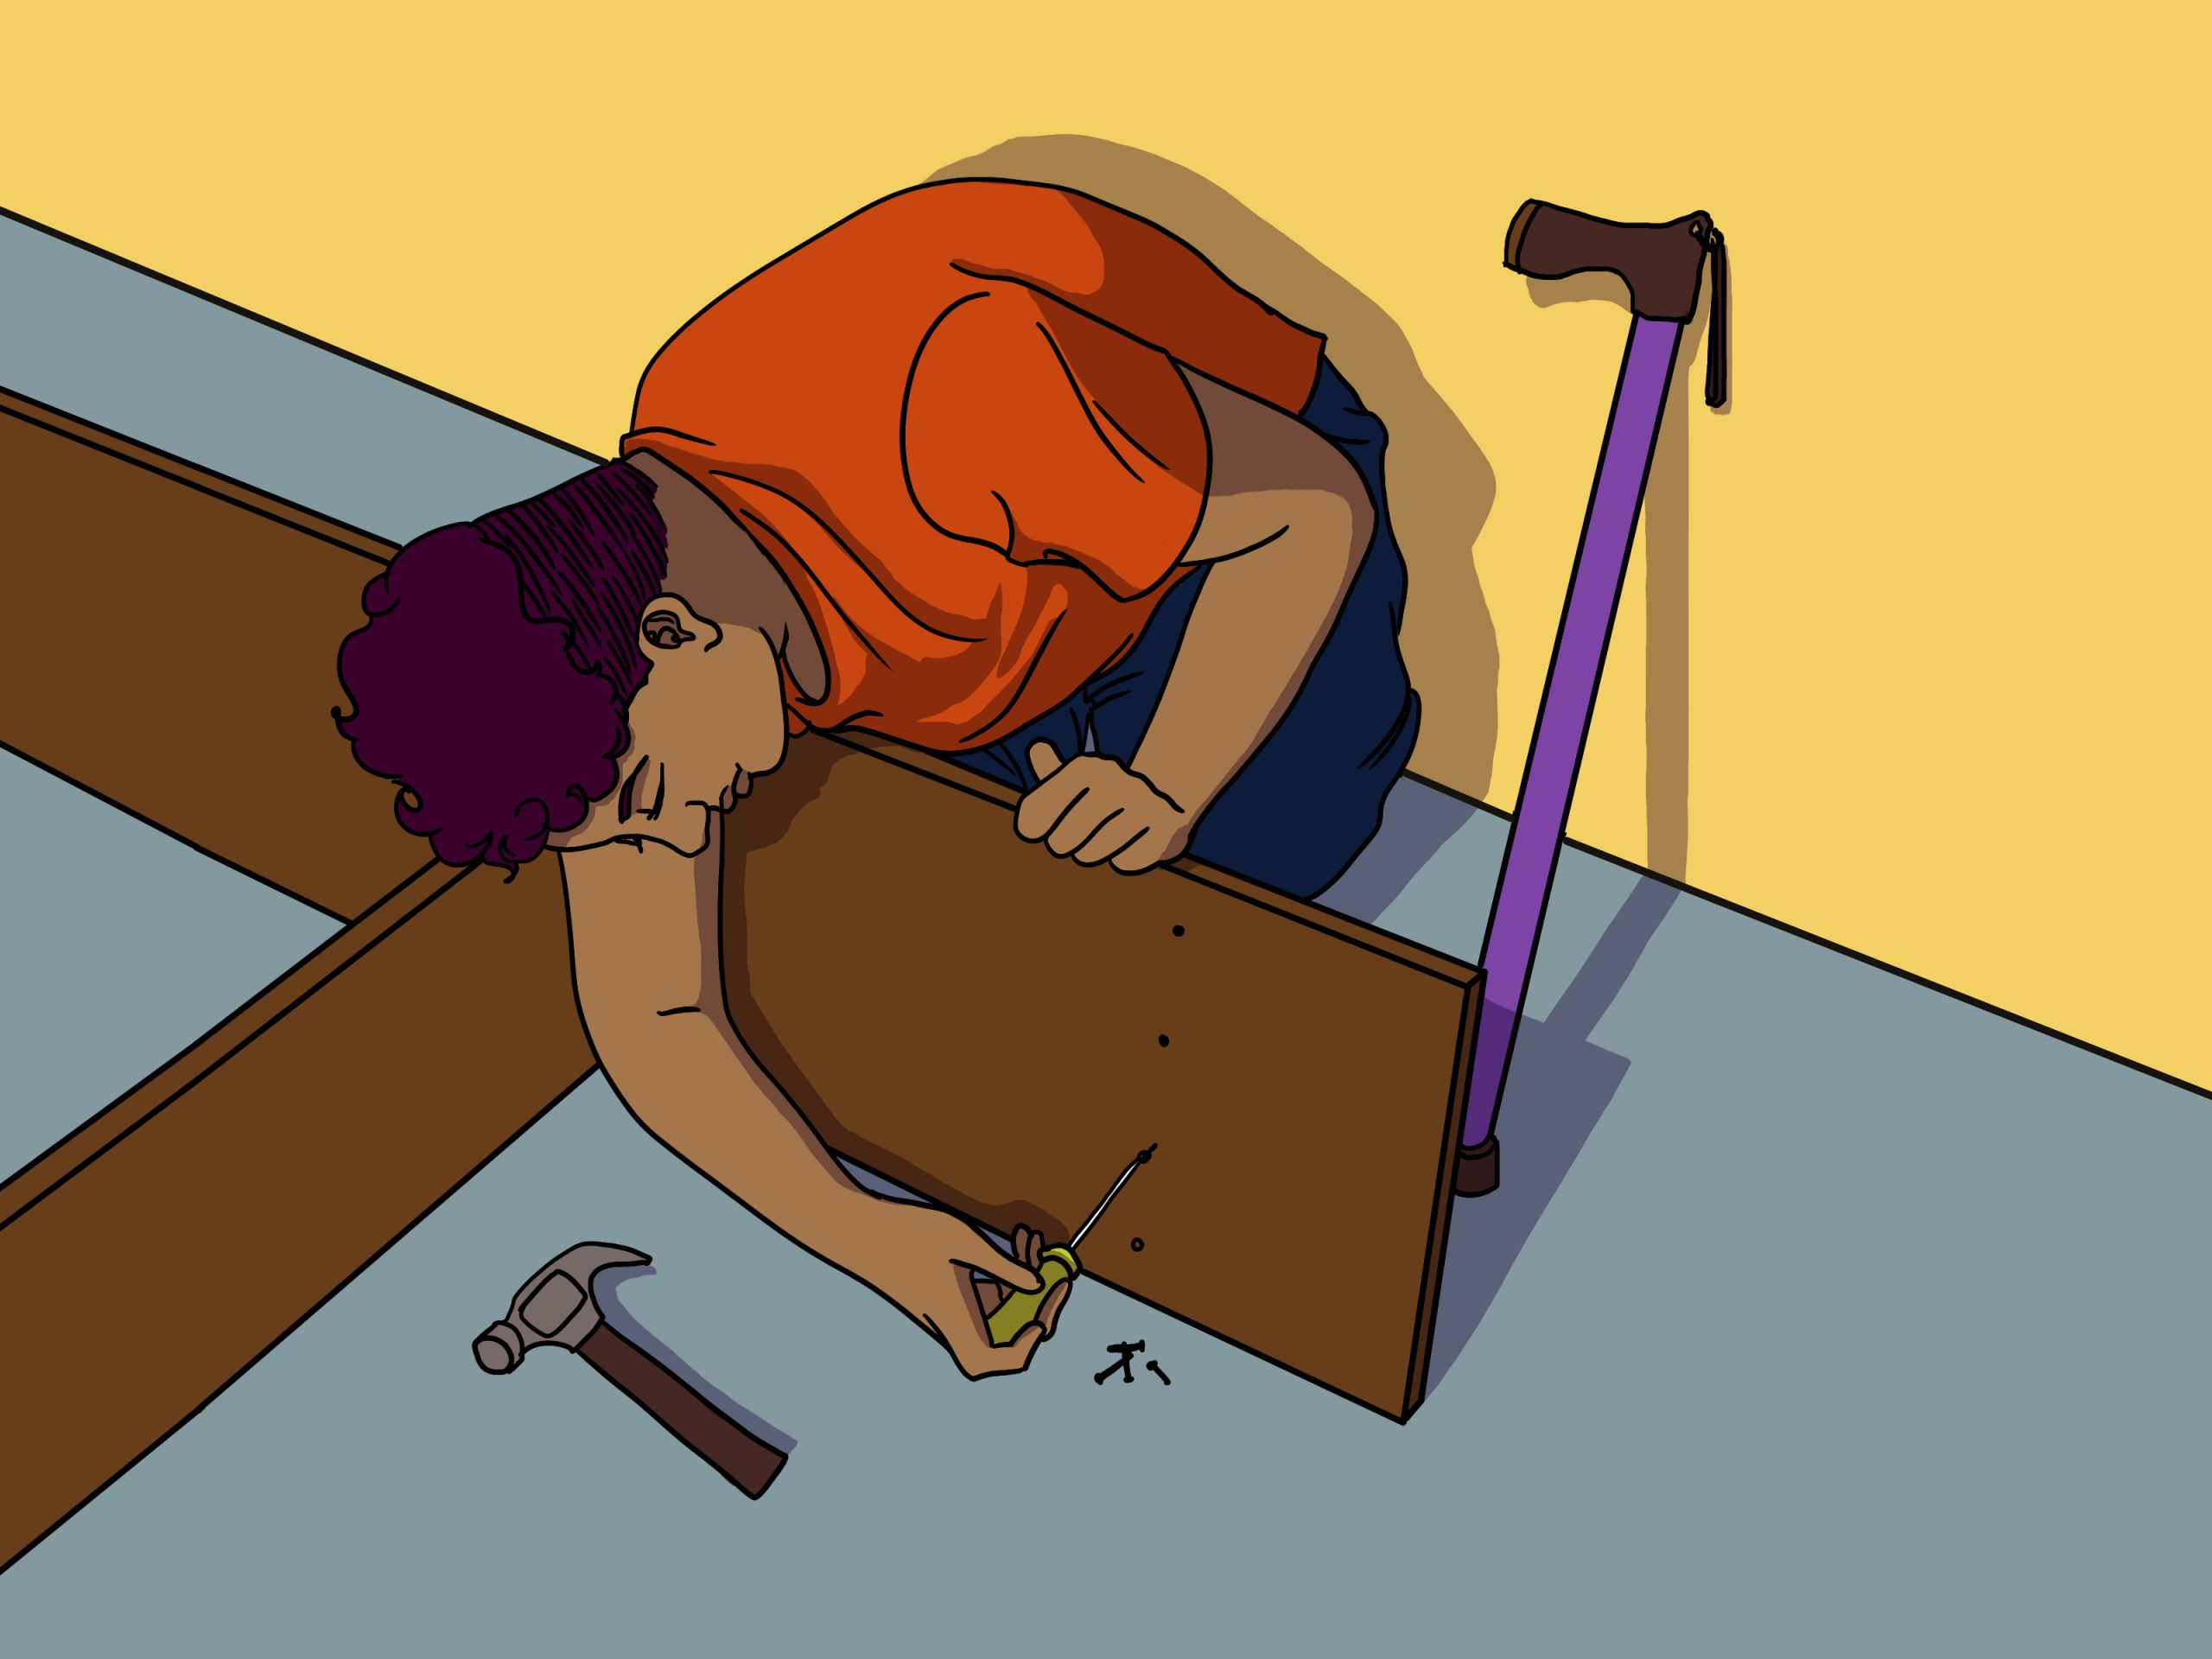 A Black woman with short, curly hair kneels on the floor, using a yellow screwdriver to fasten nails into a partially constructed bookcase. A few screws and a hammer are laid in front of her on the light blue floor. A purple cane is within reach of the woman, leaning against the yellow wall behind her.